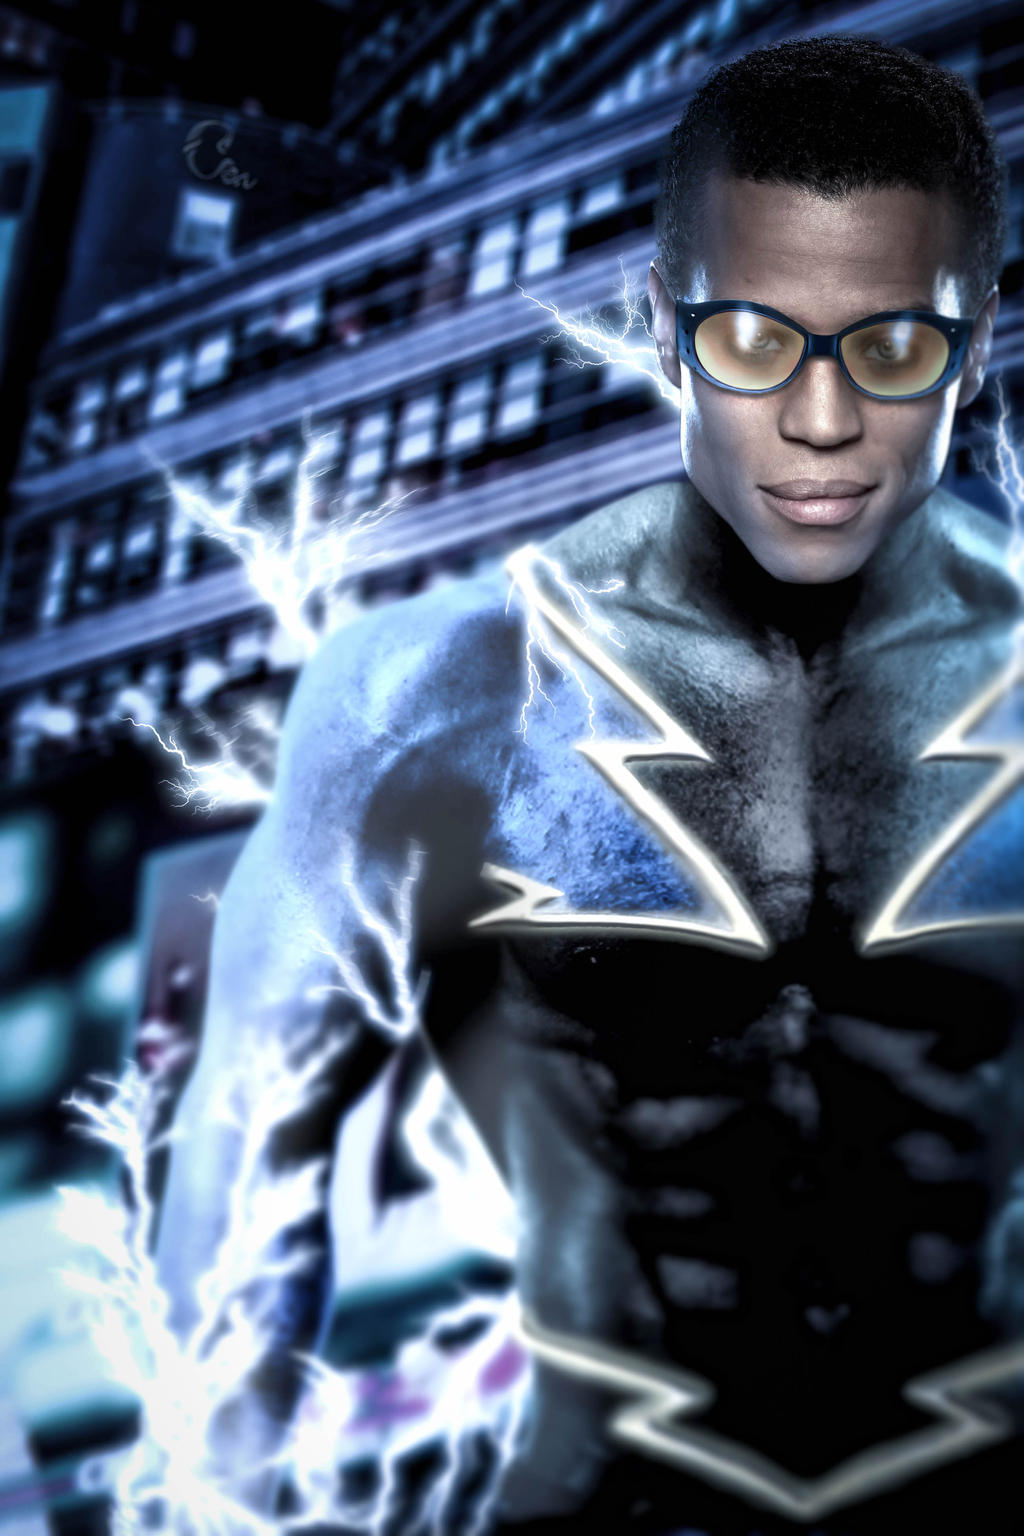 black_lightning_by_elenaldarine-dah4m8m.jpg